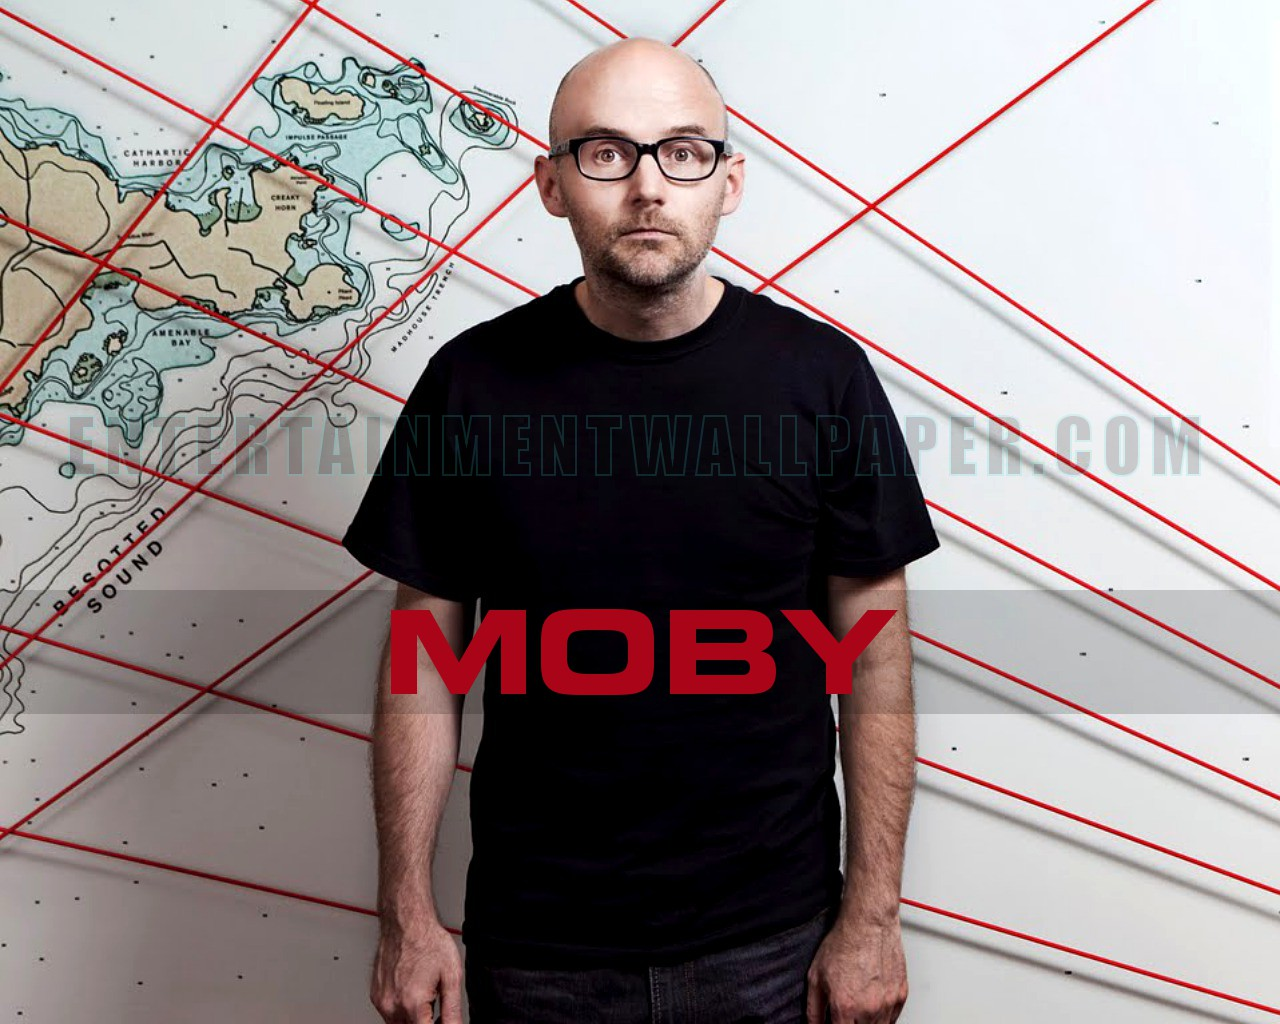 Moby Wallpaper - Original size, download now.